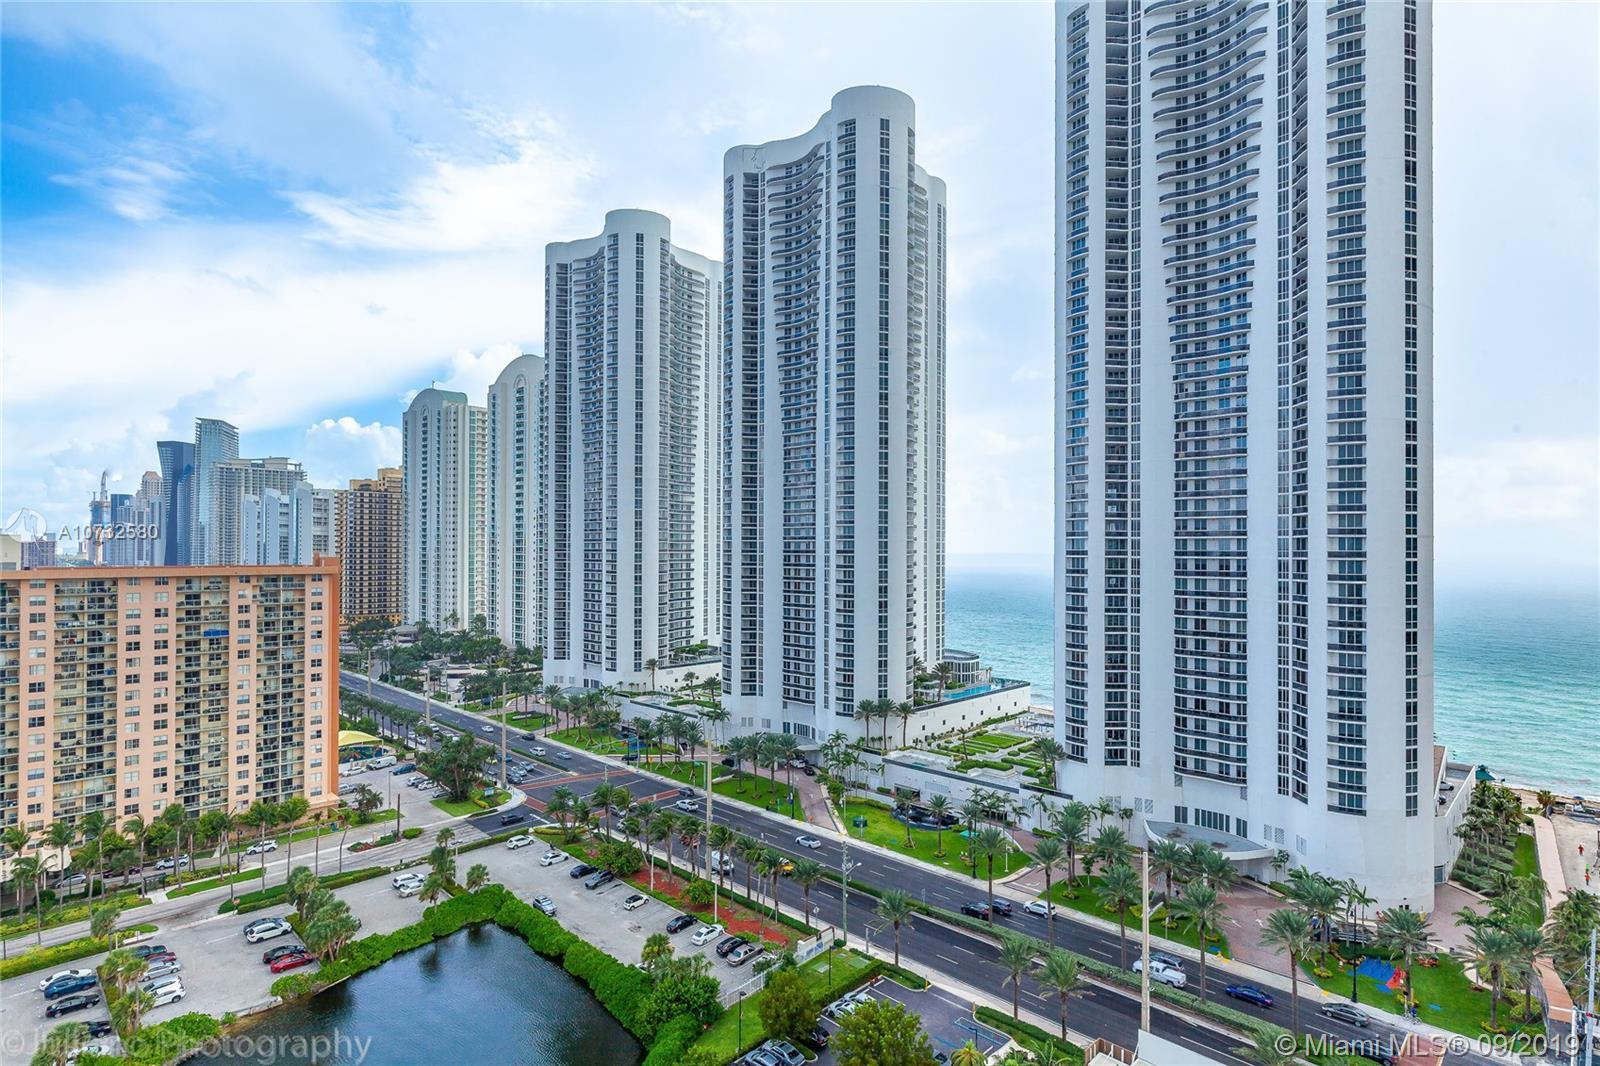 Exquisite condo with magnificent ocean and city views. This is a corner large floor plan with many c